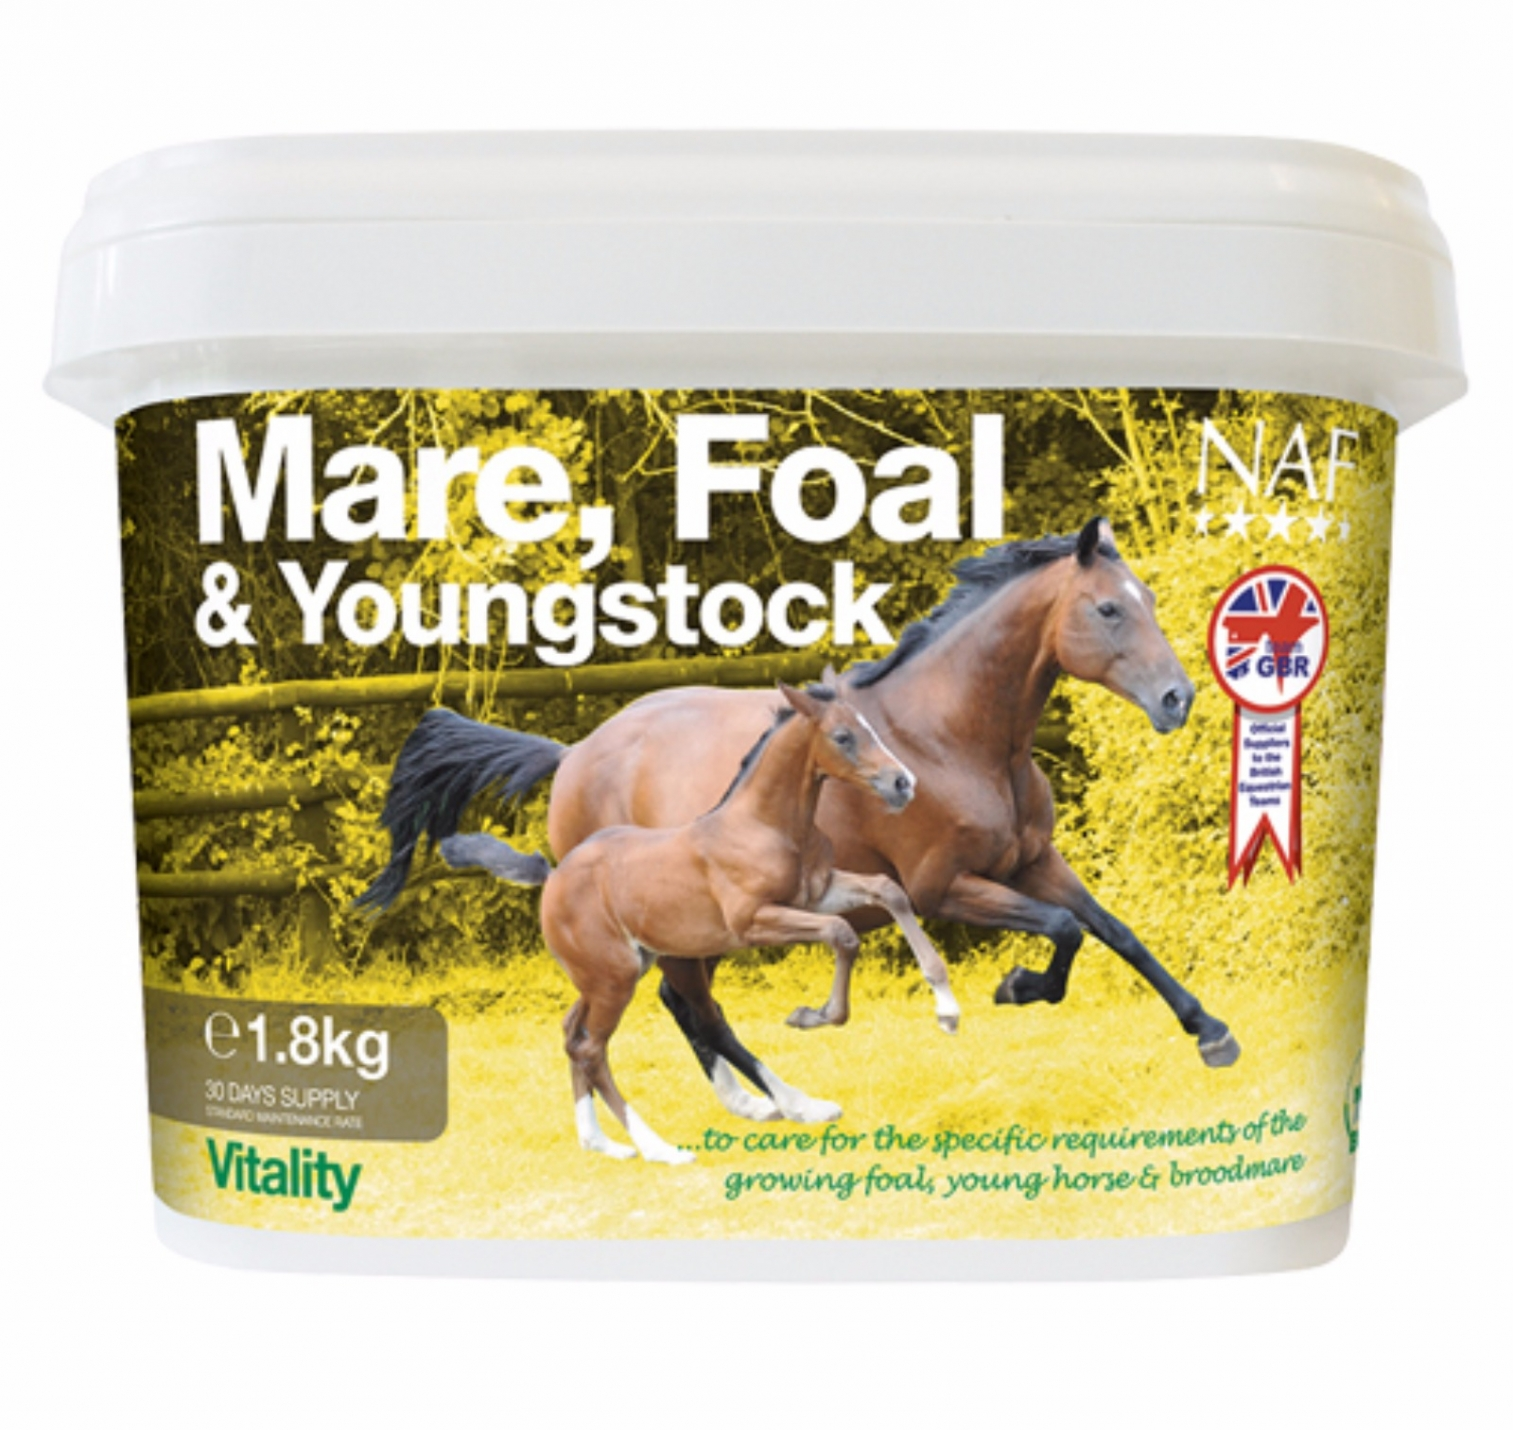 NAF Mare, Foal & Youngstock Supplement 1.8 Kg